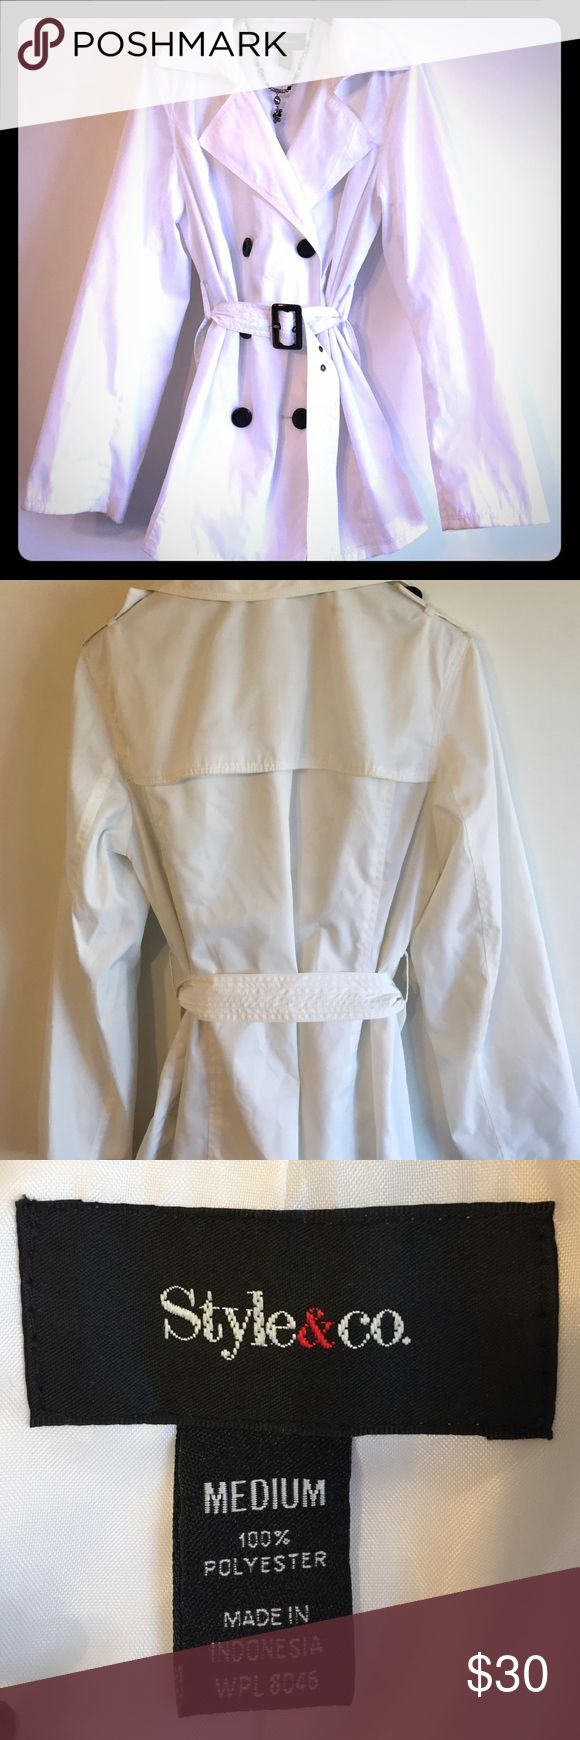 White Trench coat Beautiful bright white trench coat with black buttons. No missing buttons and in very good condition. Style & Co Jackets & Coats Trench Coats